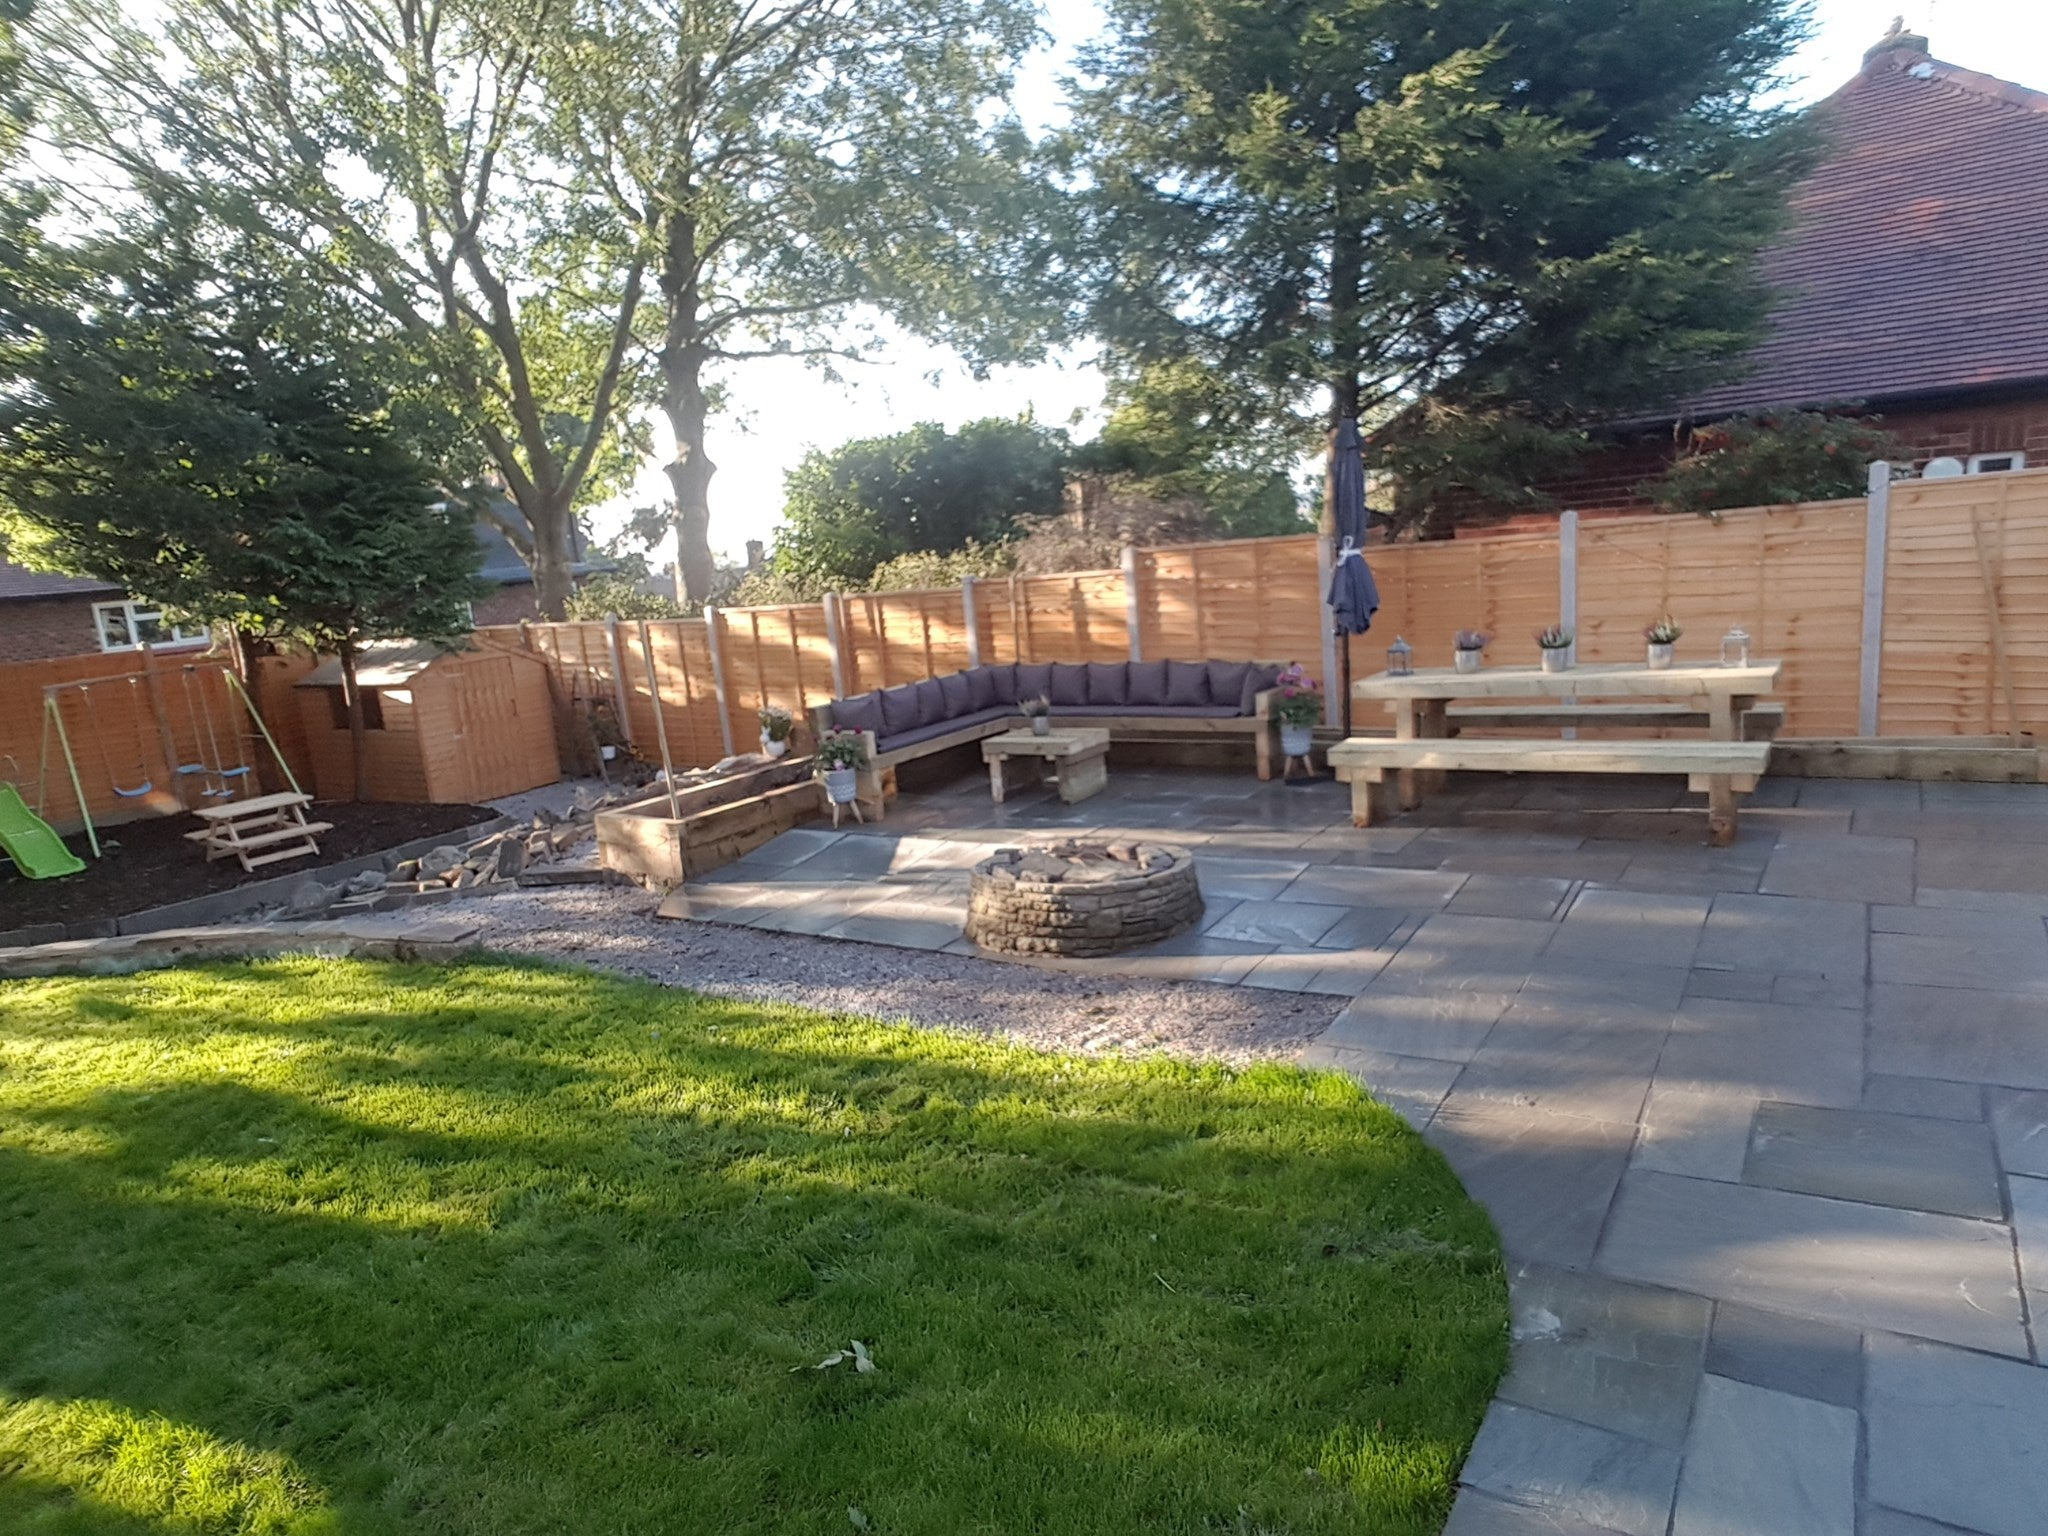 PCRS - Cheshire Bespoke Garden and Property Services